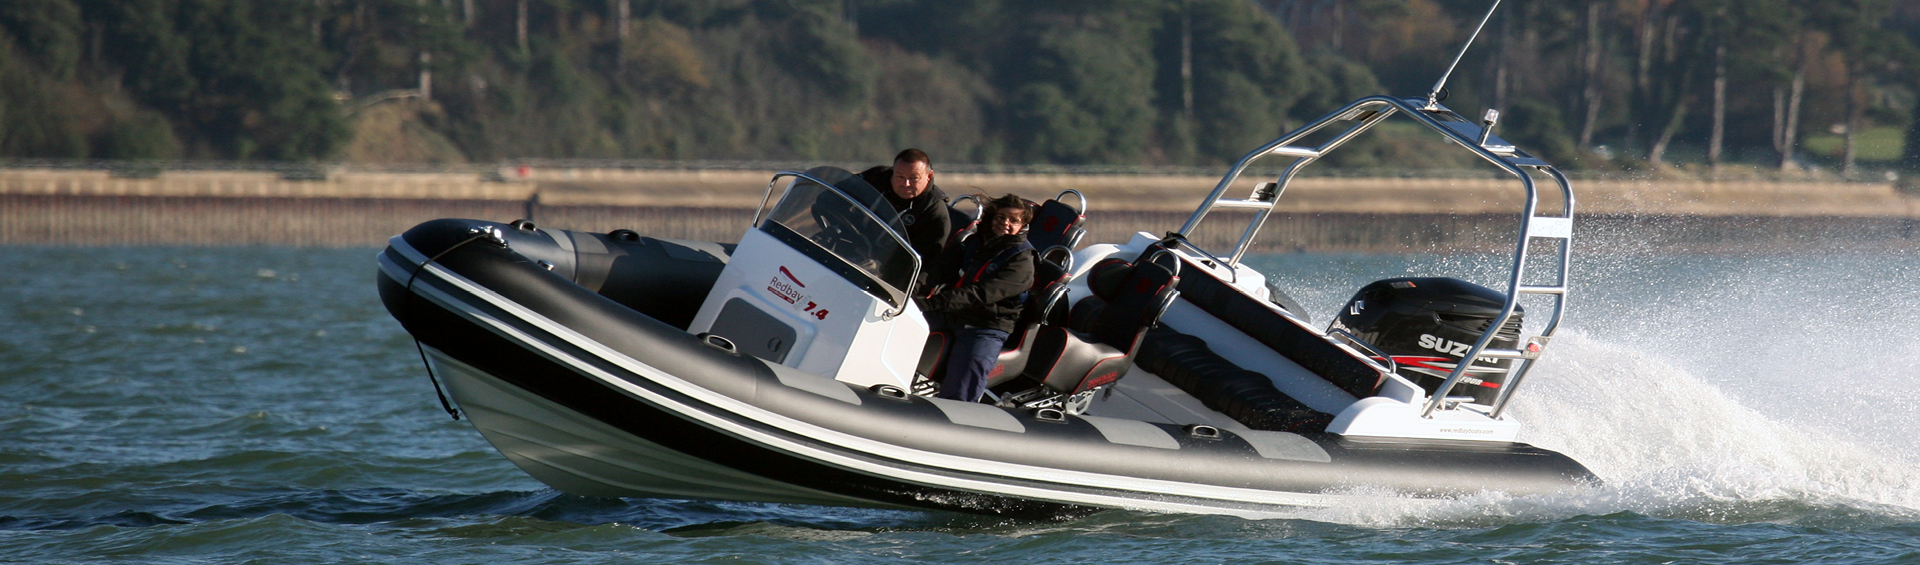 Stormforce 7.4 rib picture